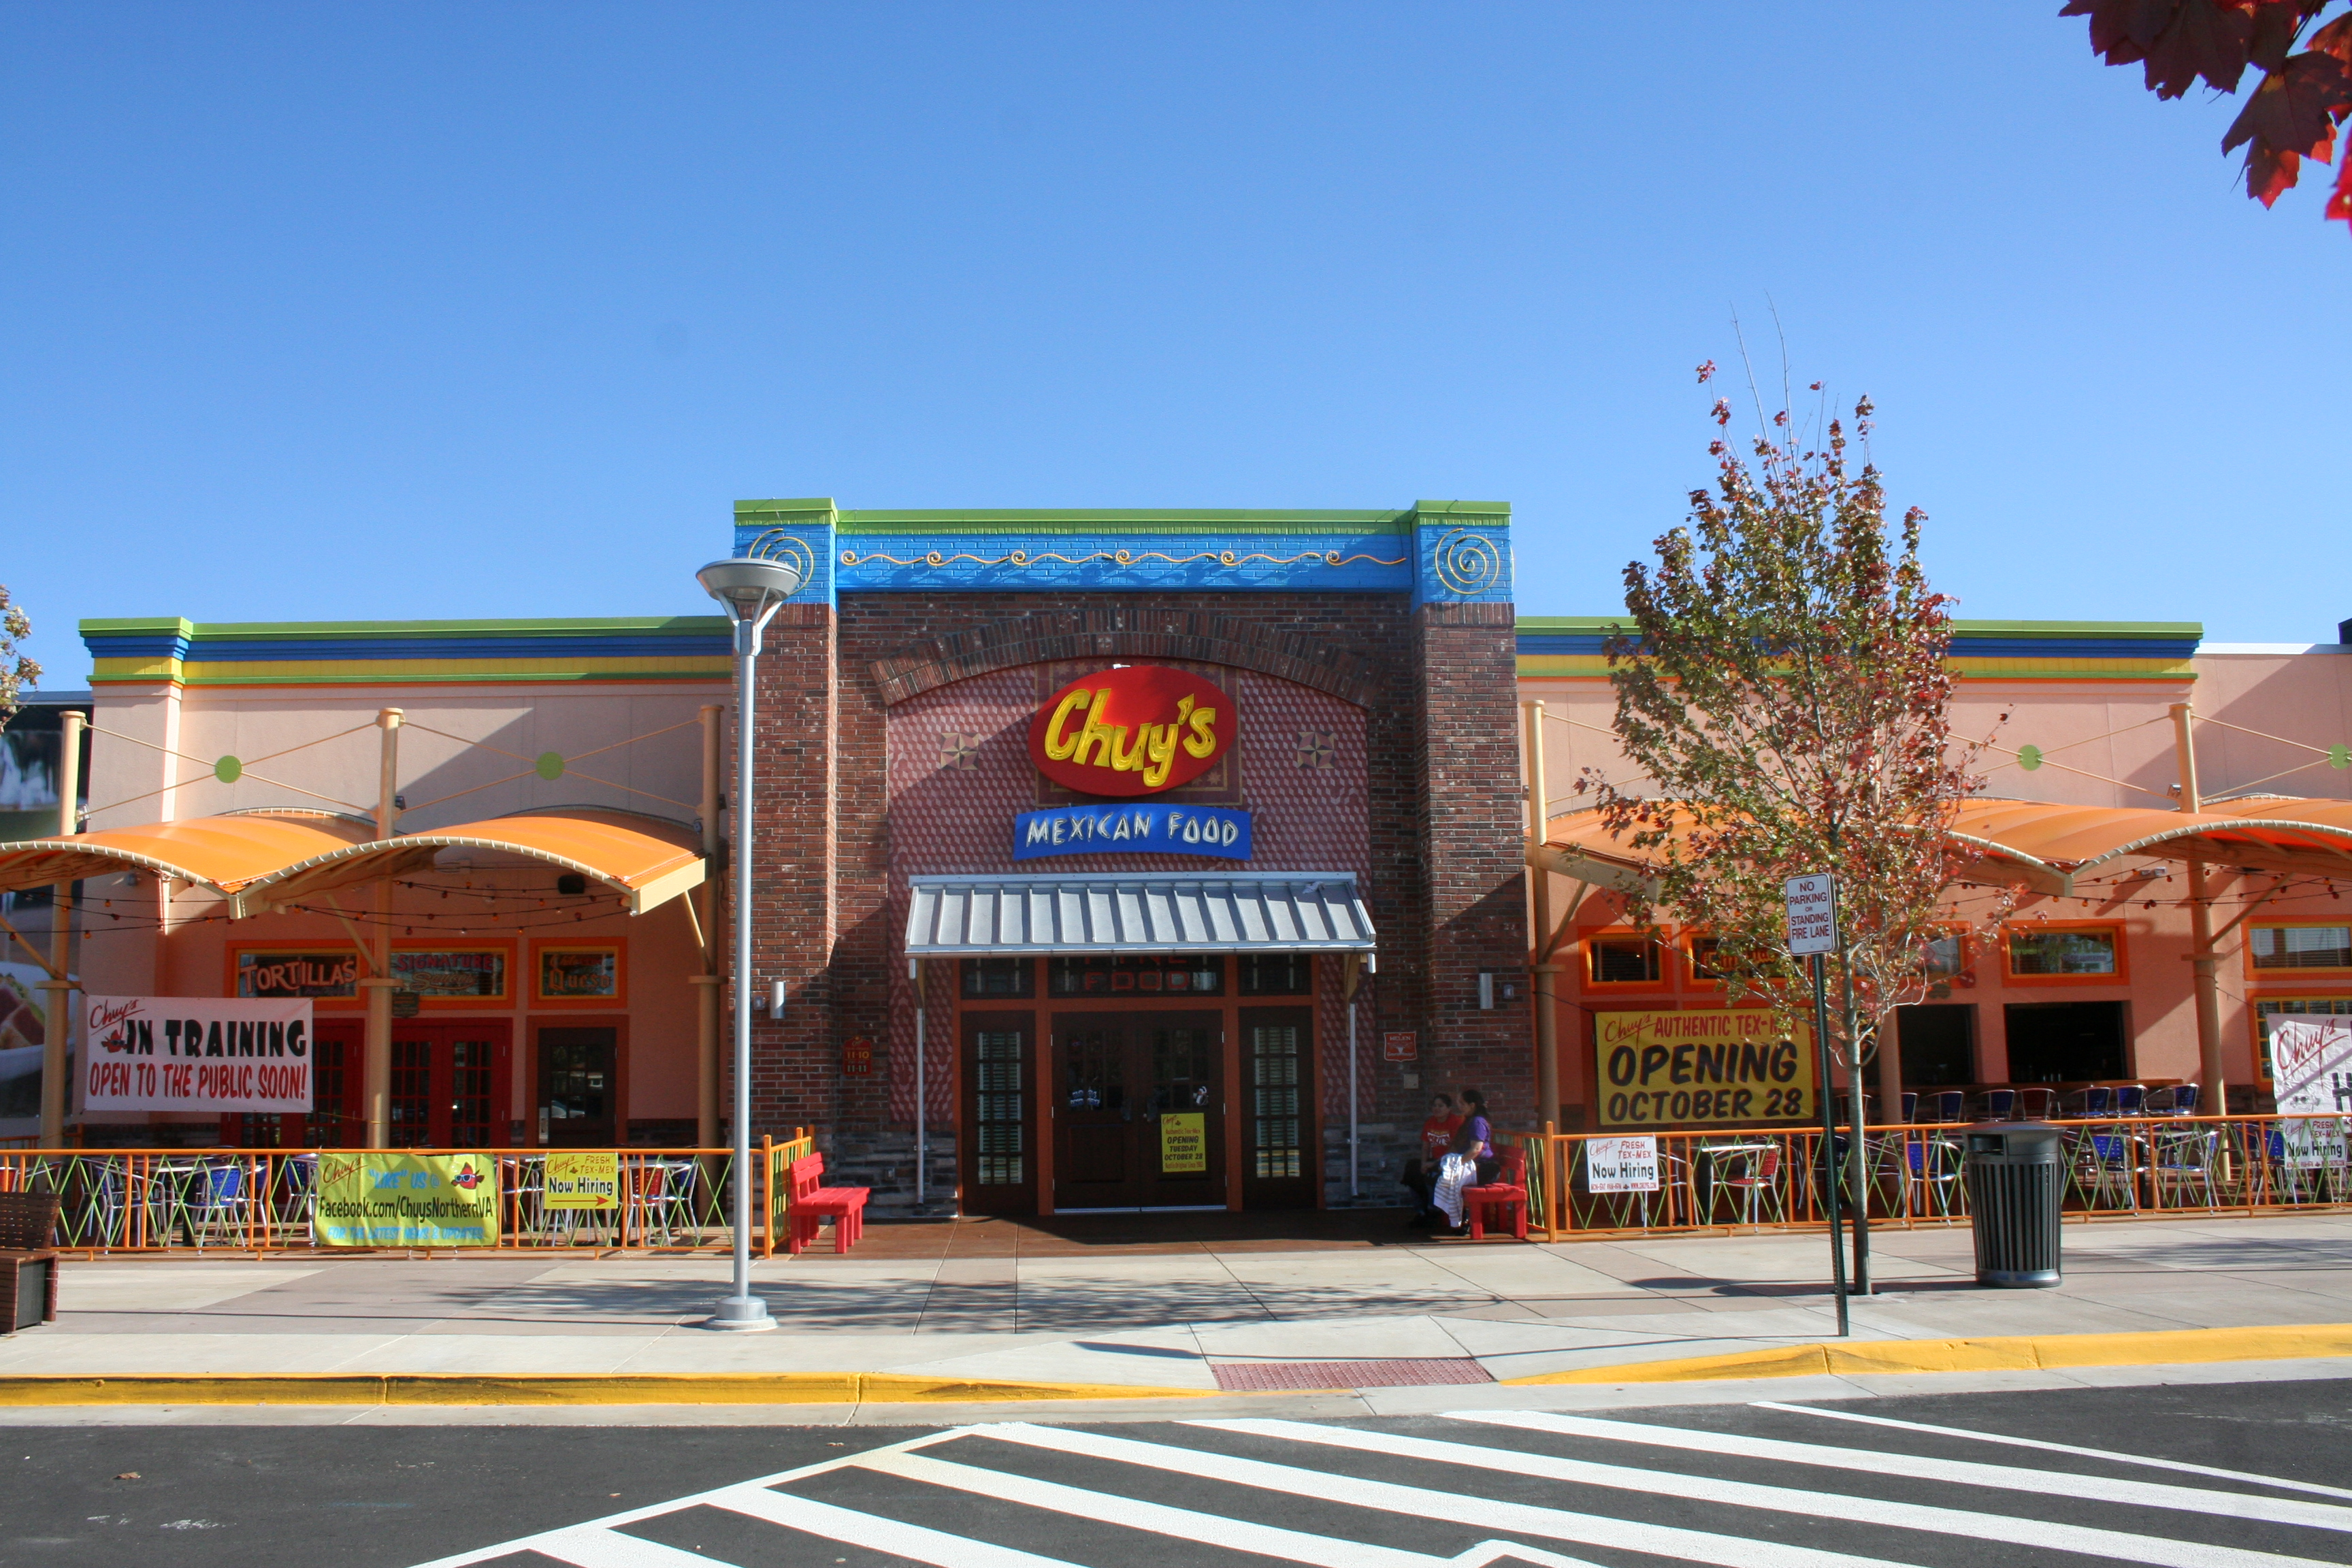 Chuy's Tex-Mex opened in Fairfax in September and at the new Springfield Town Center (above) in October. (Photo: Mark Heckathorn/DC on Heels)